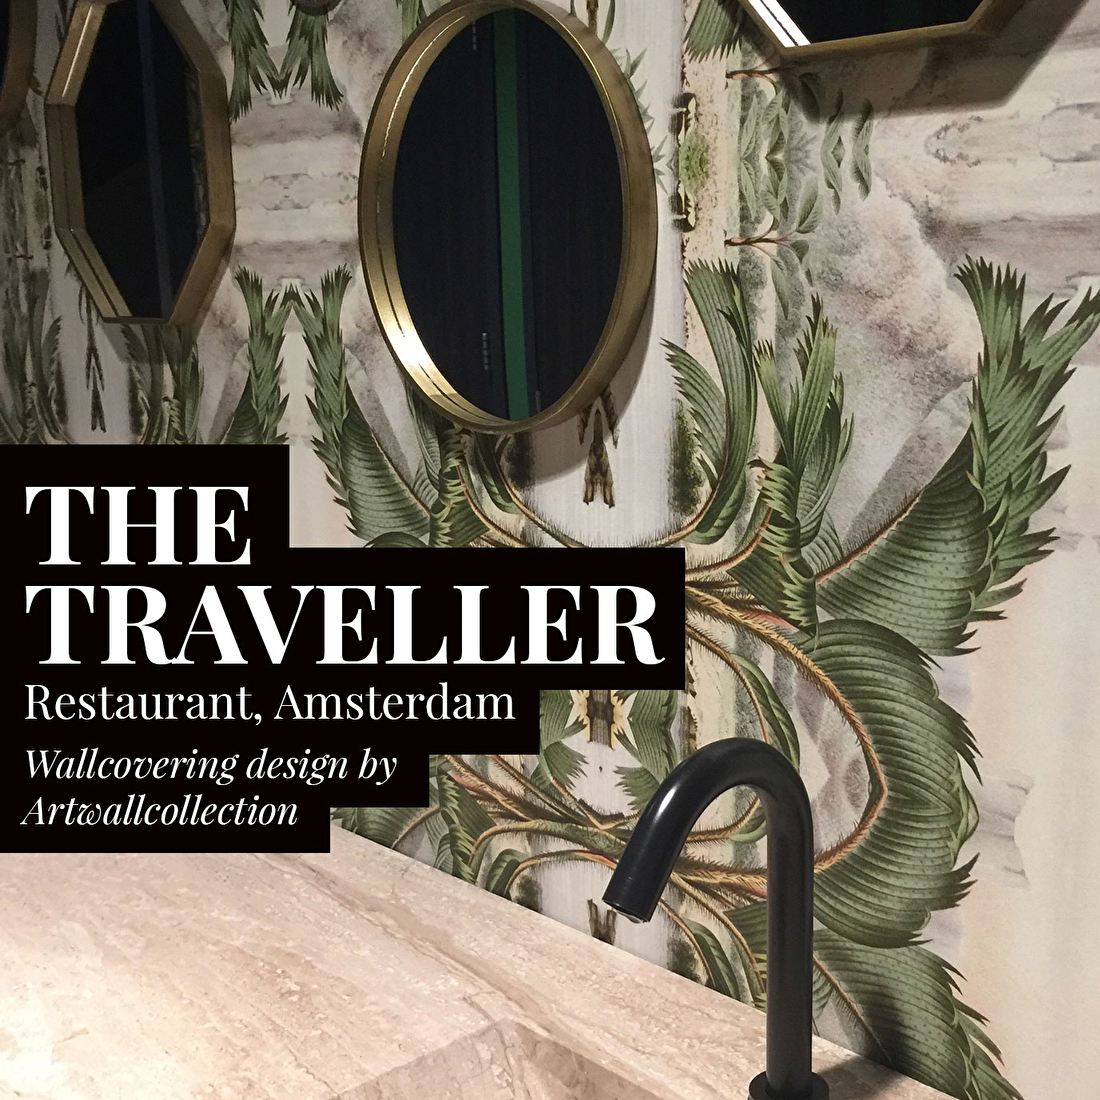 wallcovering restaurant The Traveller